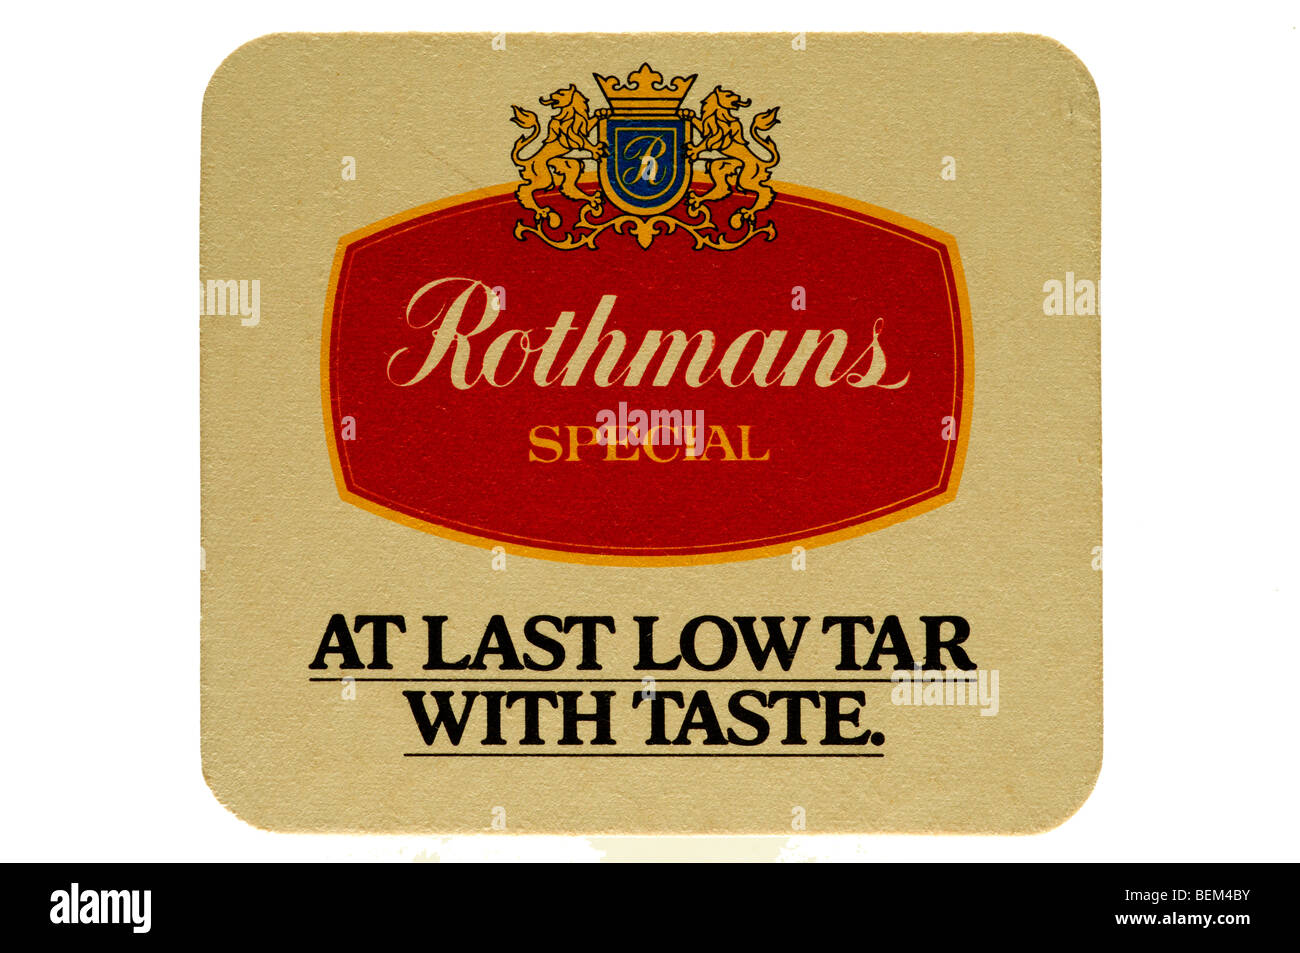 rothmans special at last low tar with taste - Stock Image